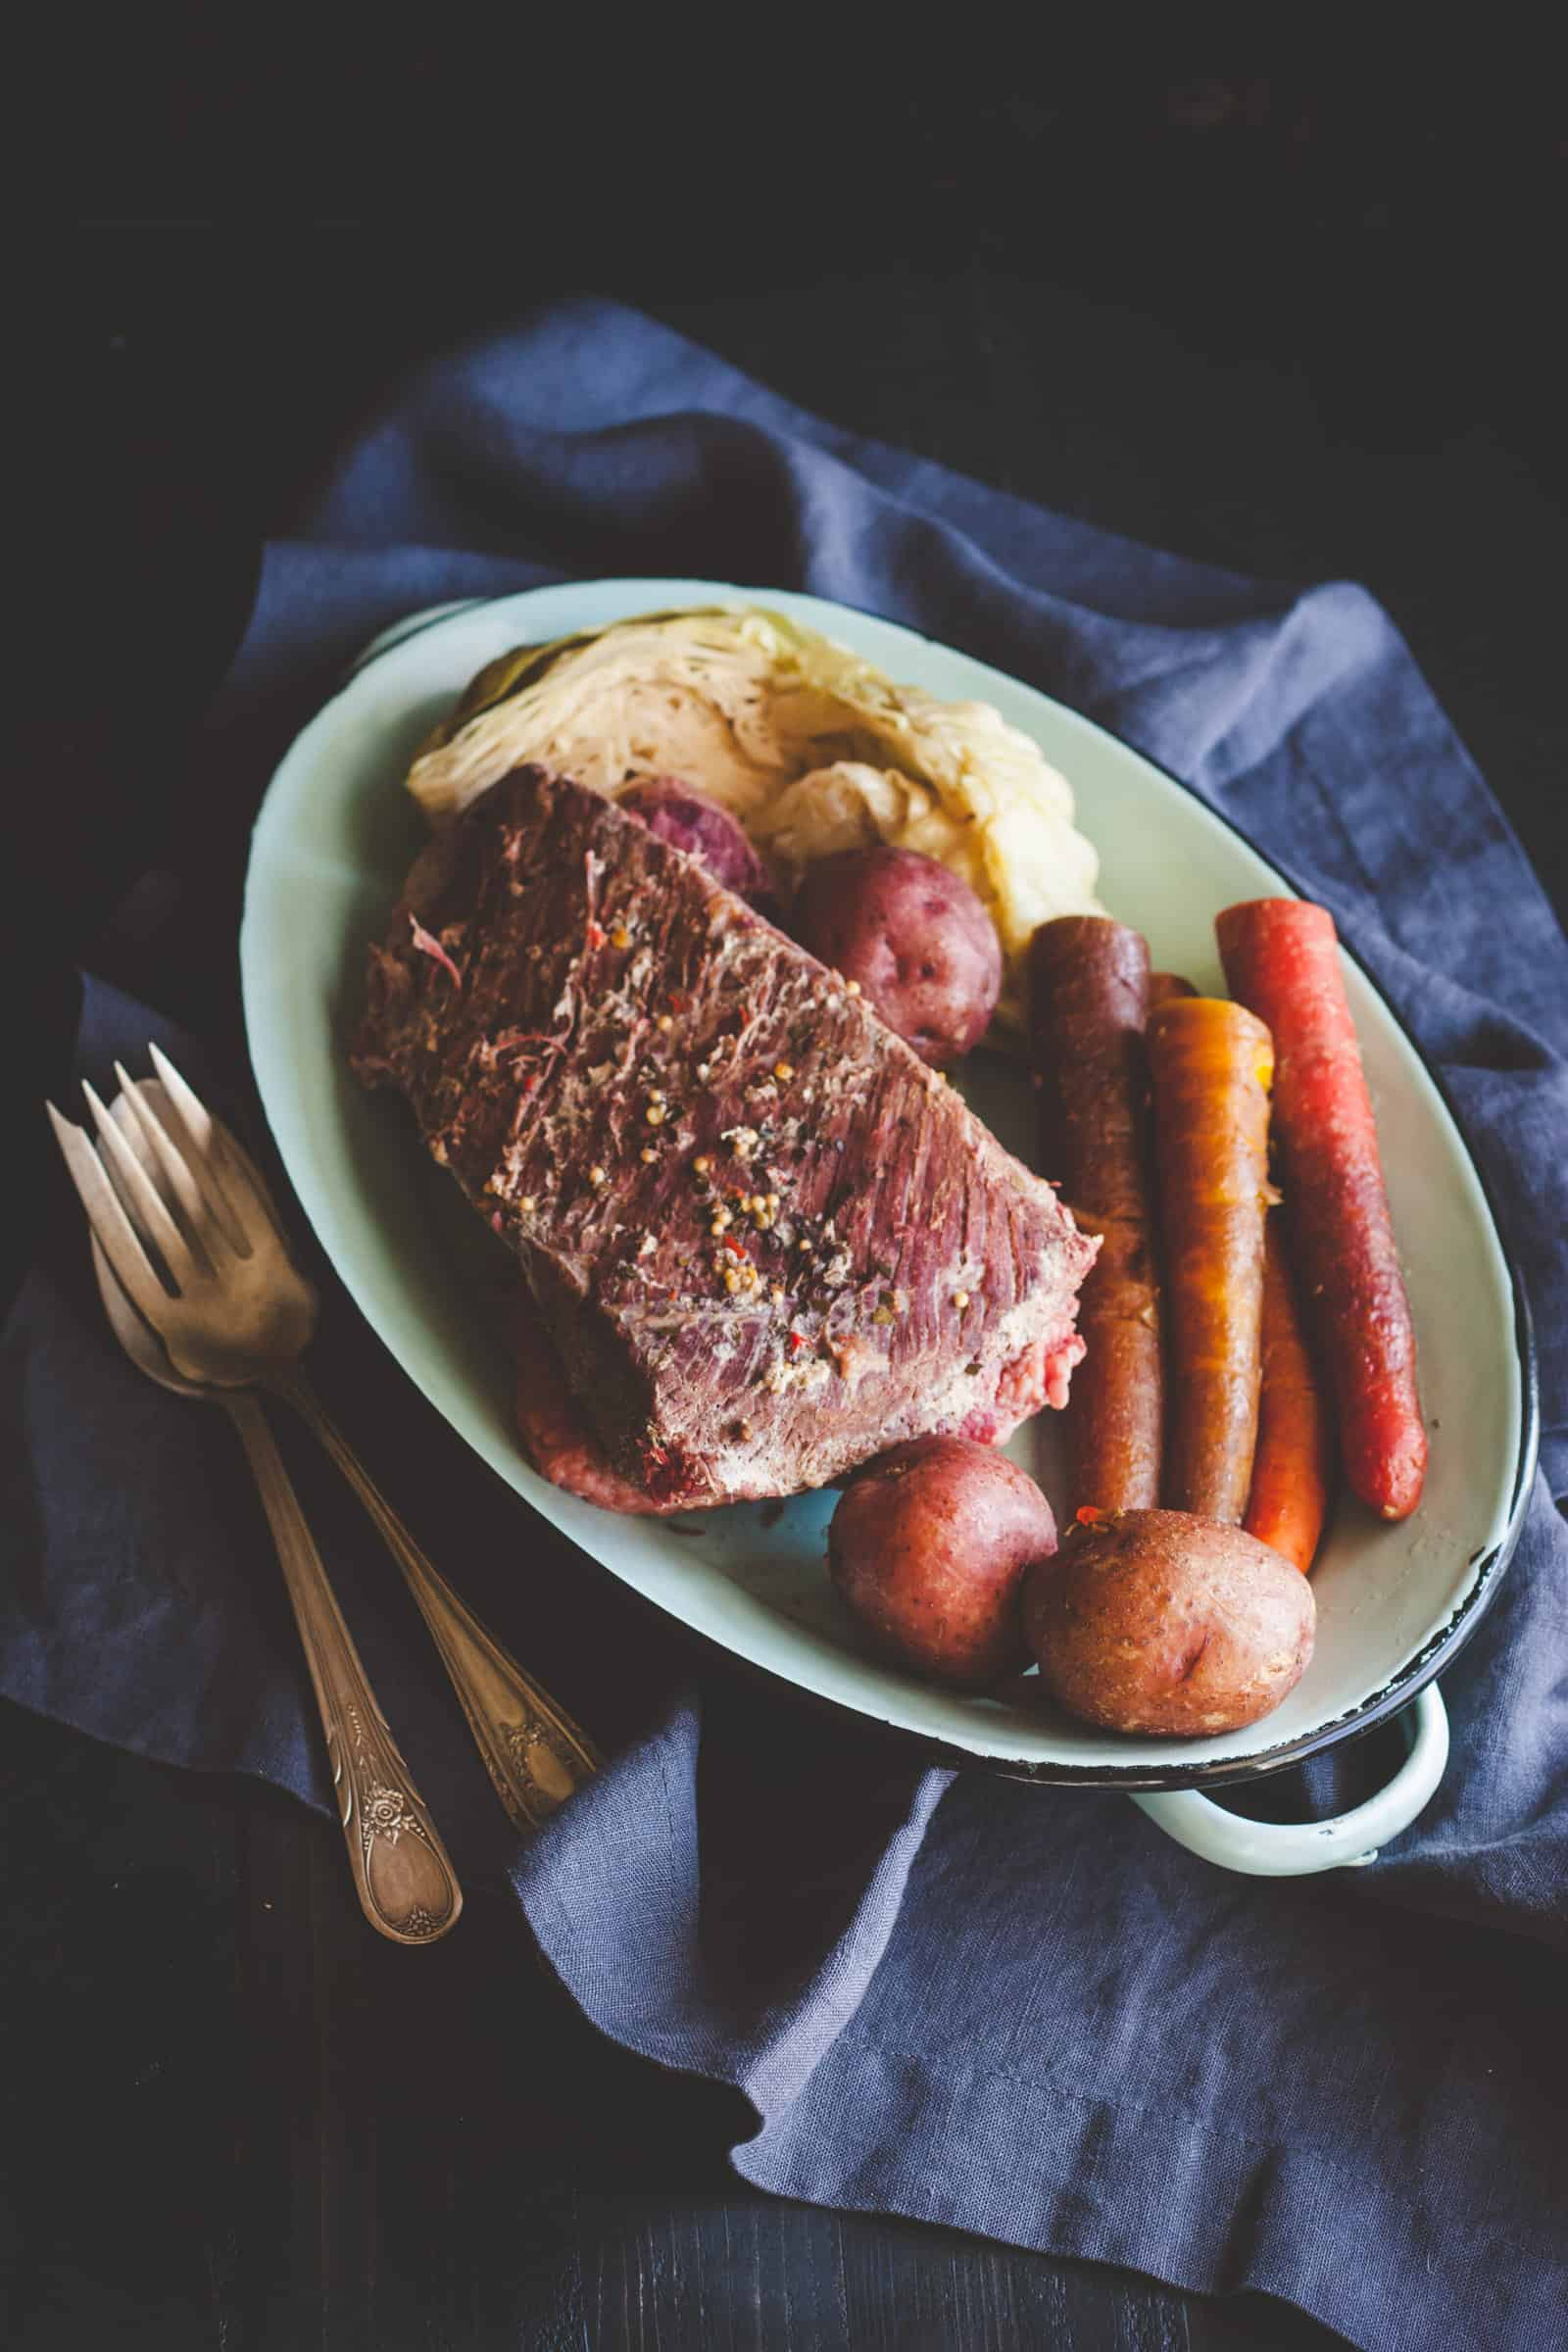 5 ingredient corned beef and cabbage, 5 ingredient crockpot corned beef cabbage potatoes and carrots recipe for St. Patricks day